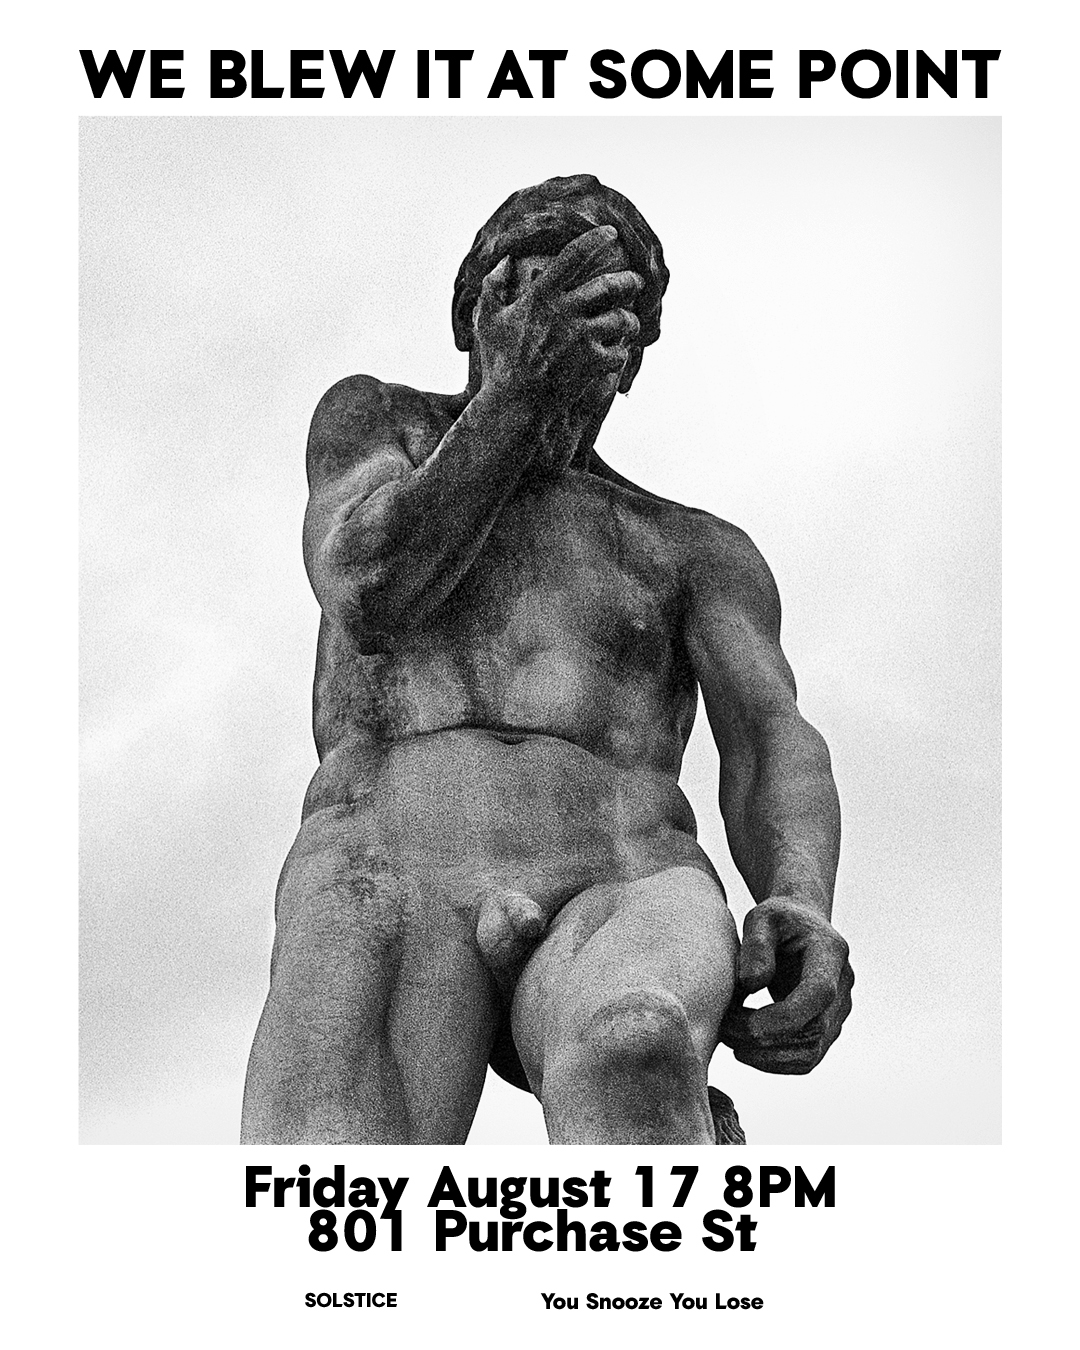 POLAR Skate Co Video Premiere Friday August 17th 8PM Free Admission